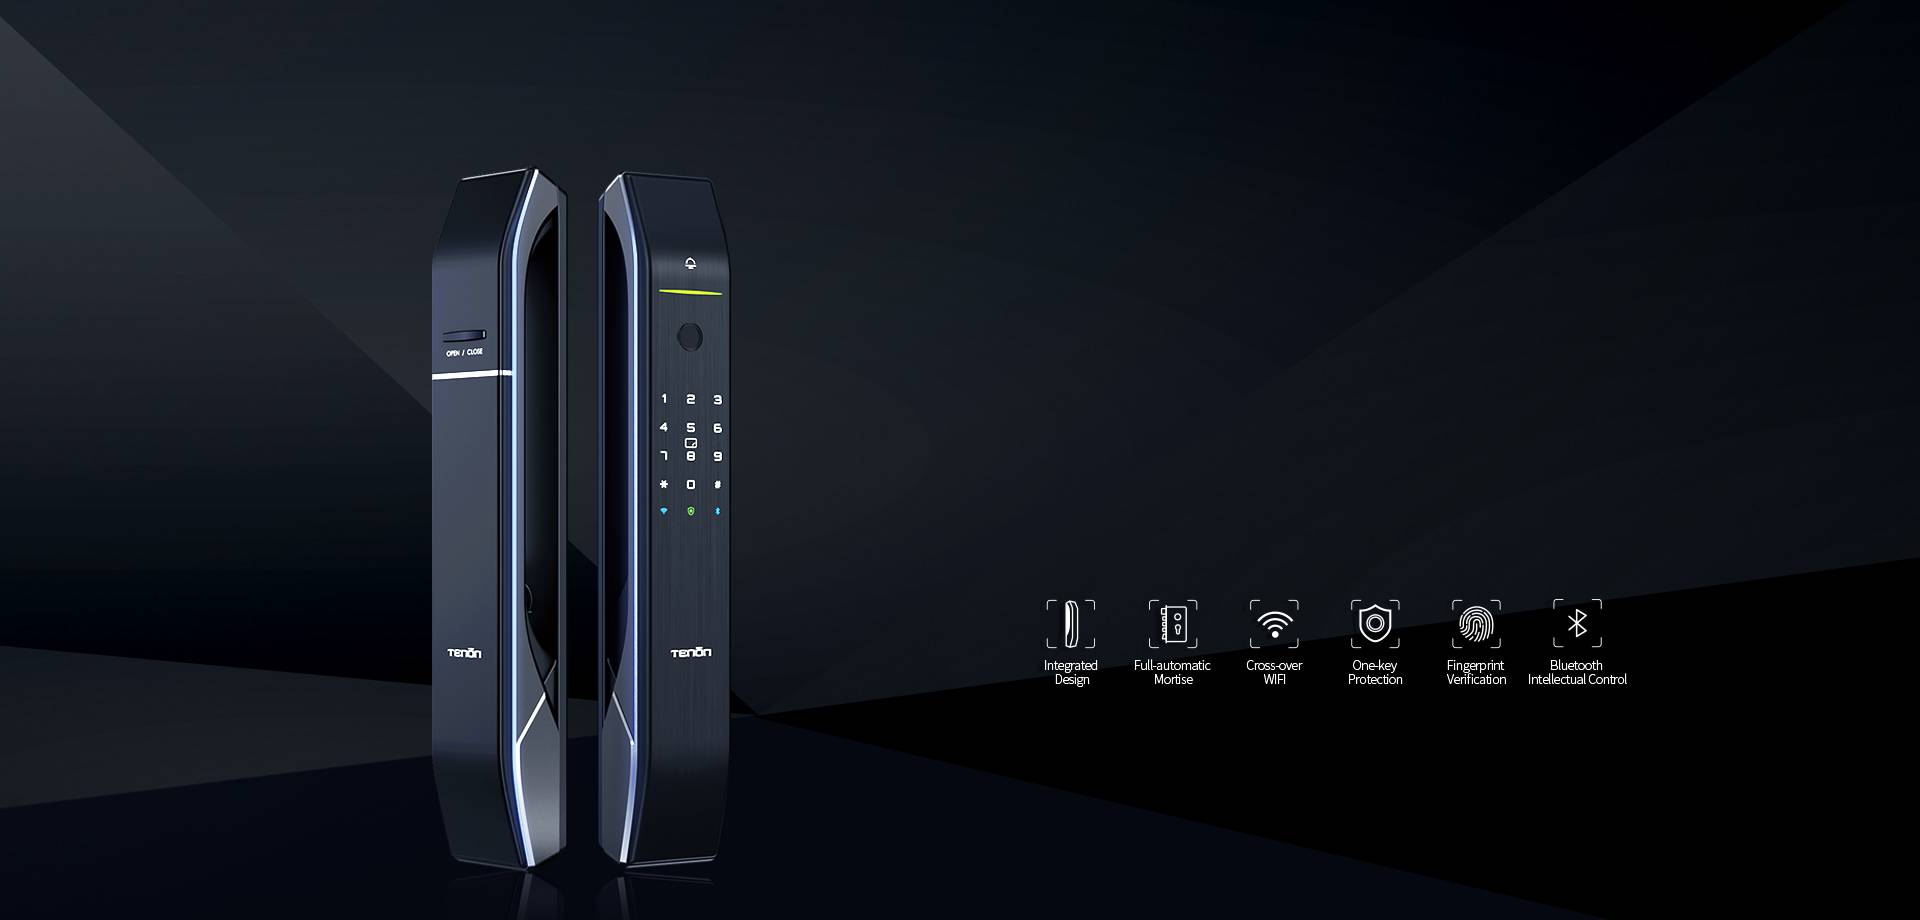 Automatic Wi-Fi enabled smart fingerprint lock A7